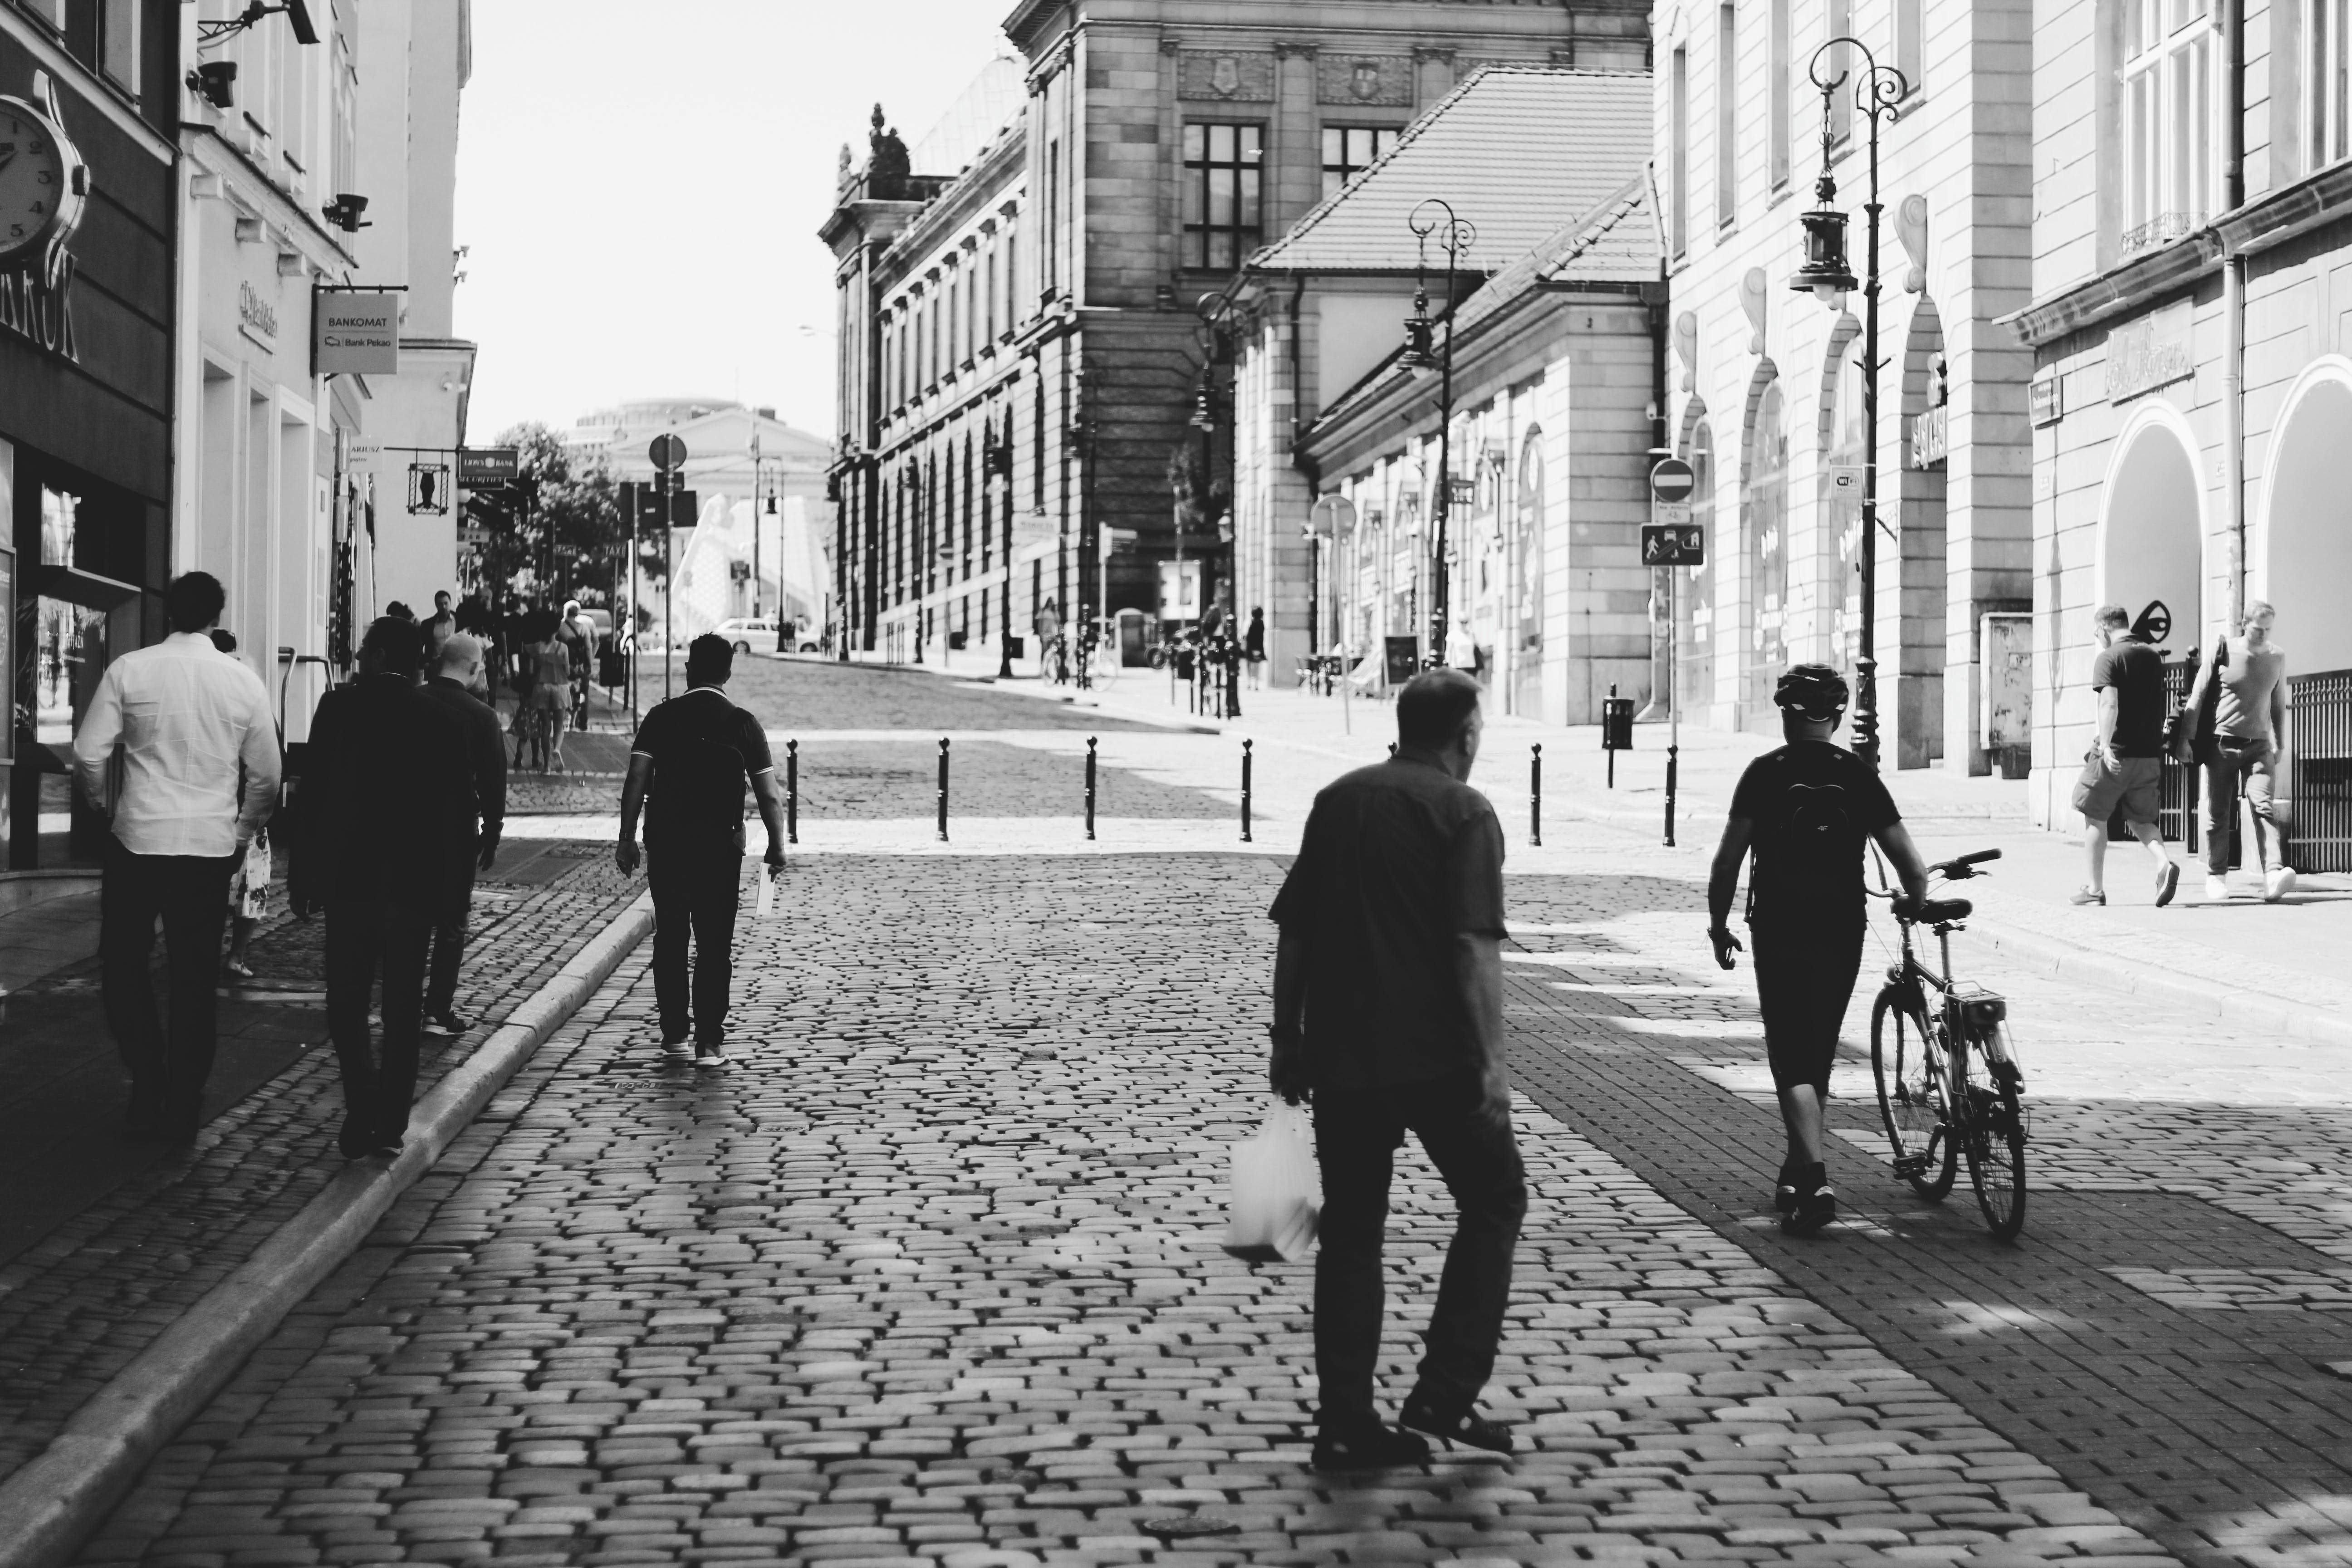 Men Walking on Road With Buildings on the Side